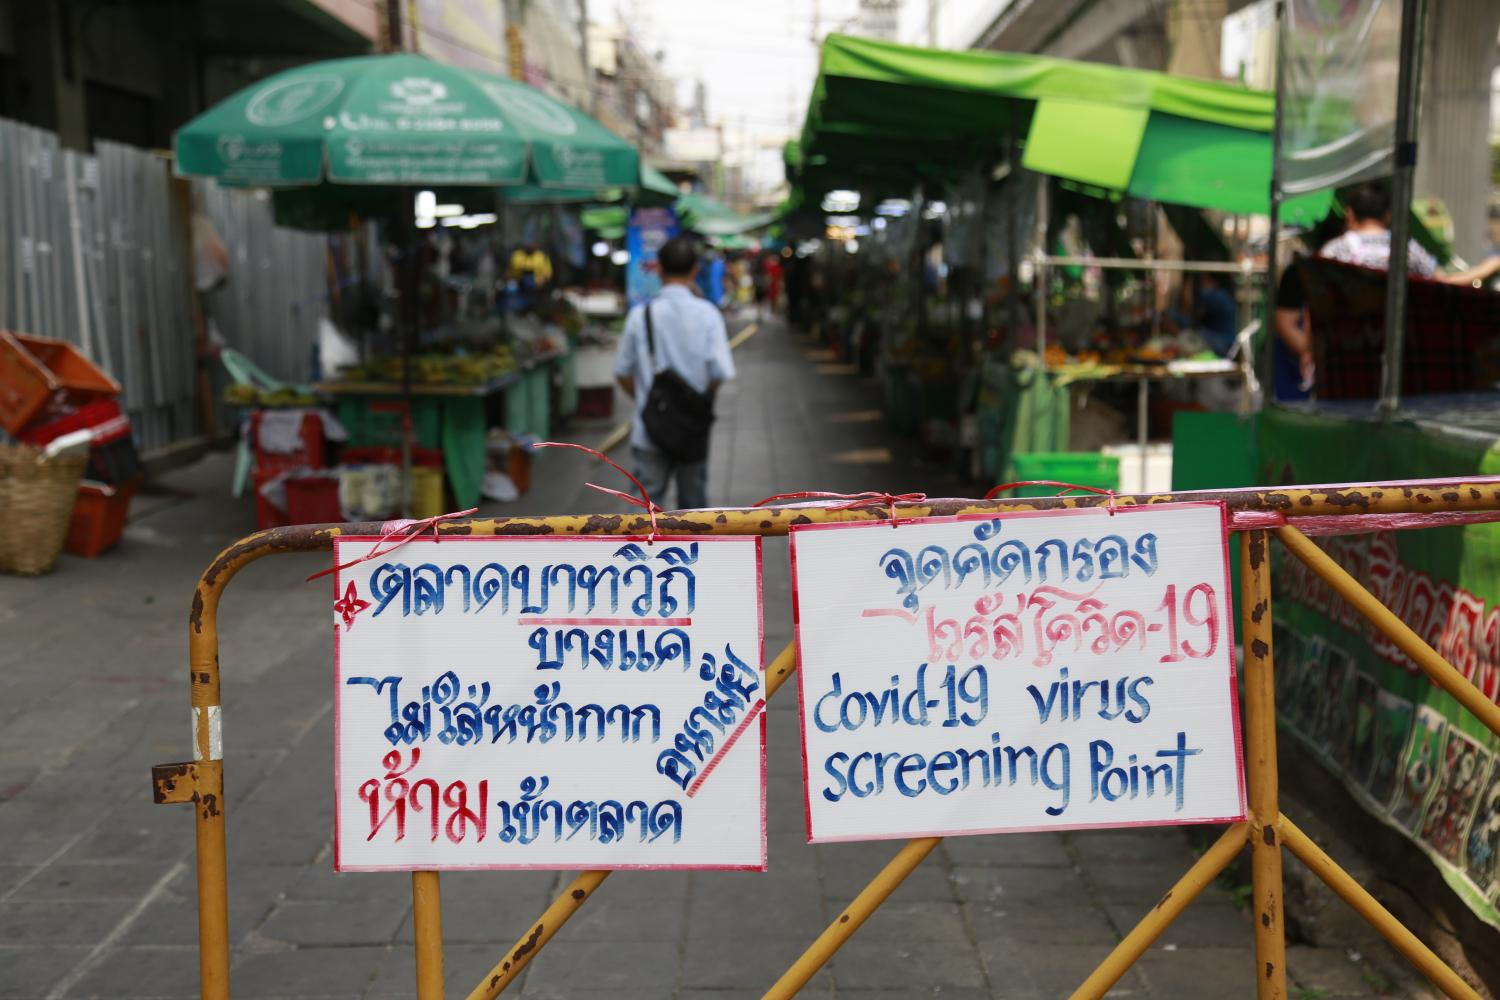 Warning signs at a screening point at a market in Bangkok's Bang Khae district urge visitors to wear masks after a new cluster of infections was detected in the area.